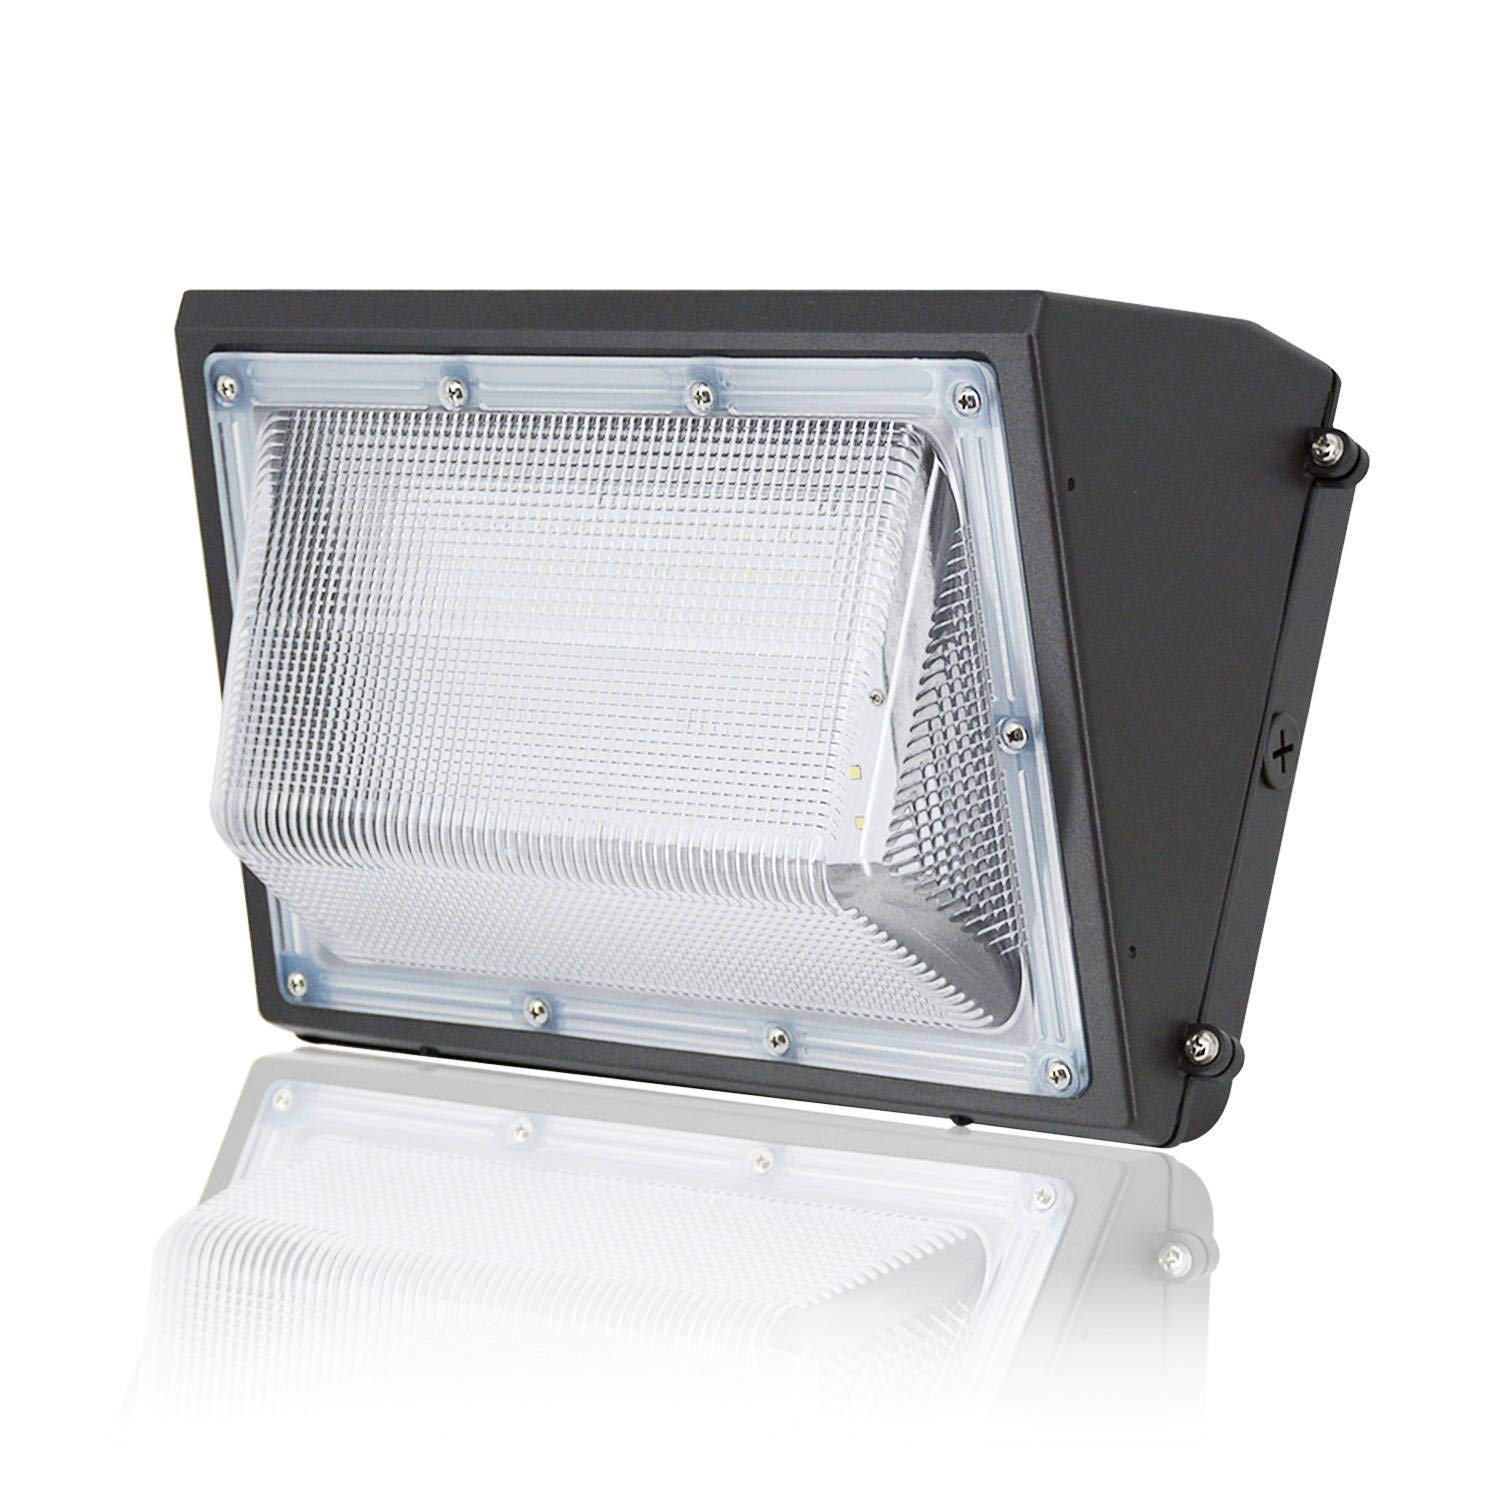 100W LED Wall Pack Light - 5000K Daylight, 12800lm, JESLED Outdoor LED Commerial Lighting Fixture, 400-600 Watt HPS/HID Replacement, AC100-277V, IP65 Waterproof Industrial Residential Security Lights